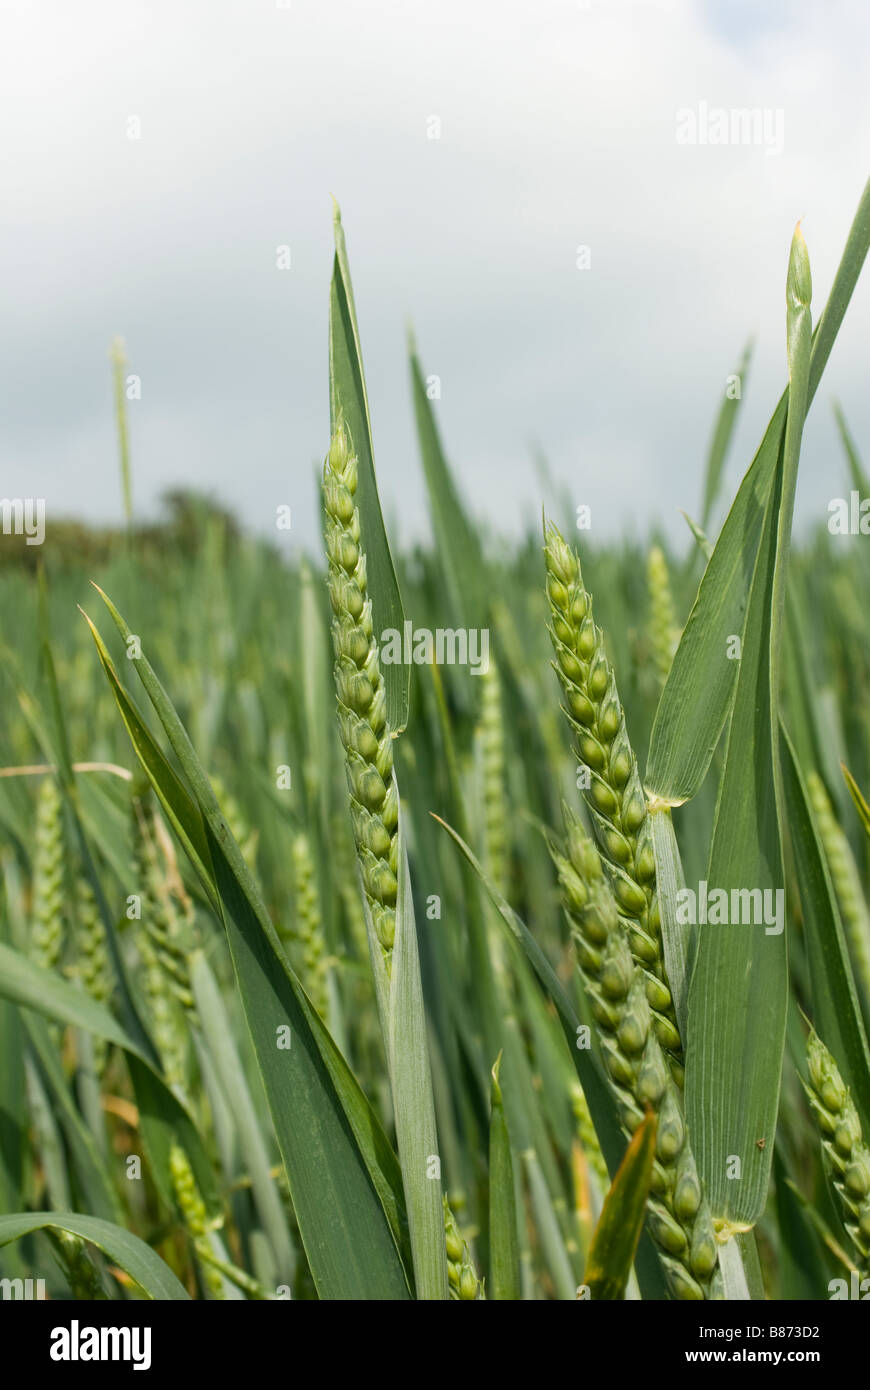 Close up view of young wheat in a field in the english countryside - Stock Image